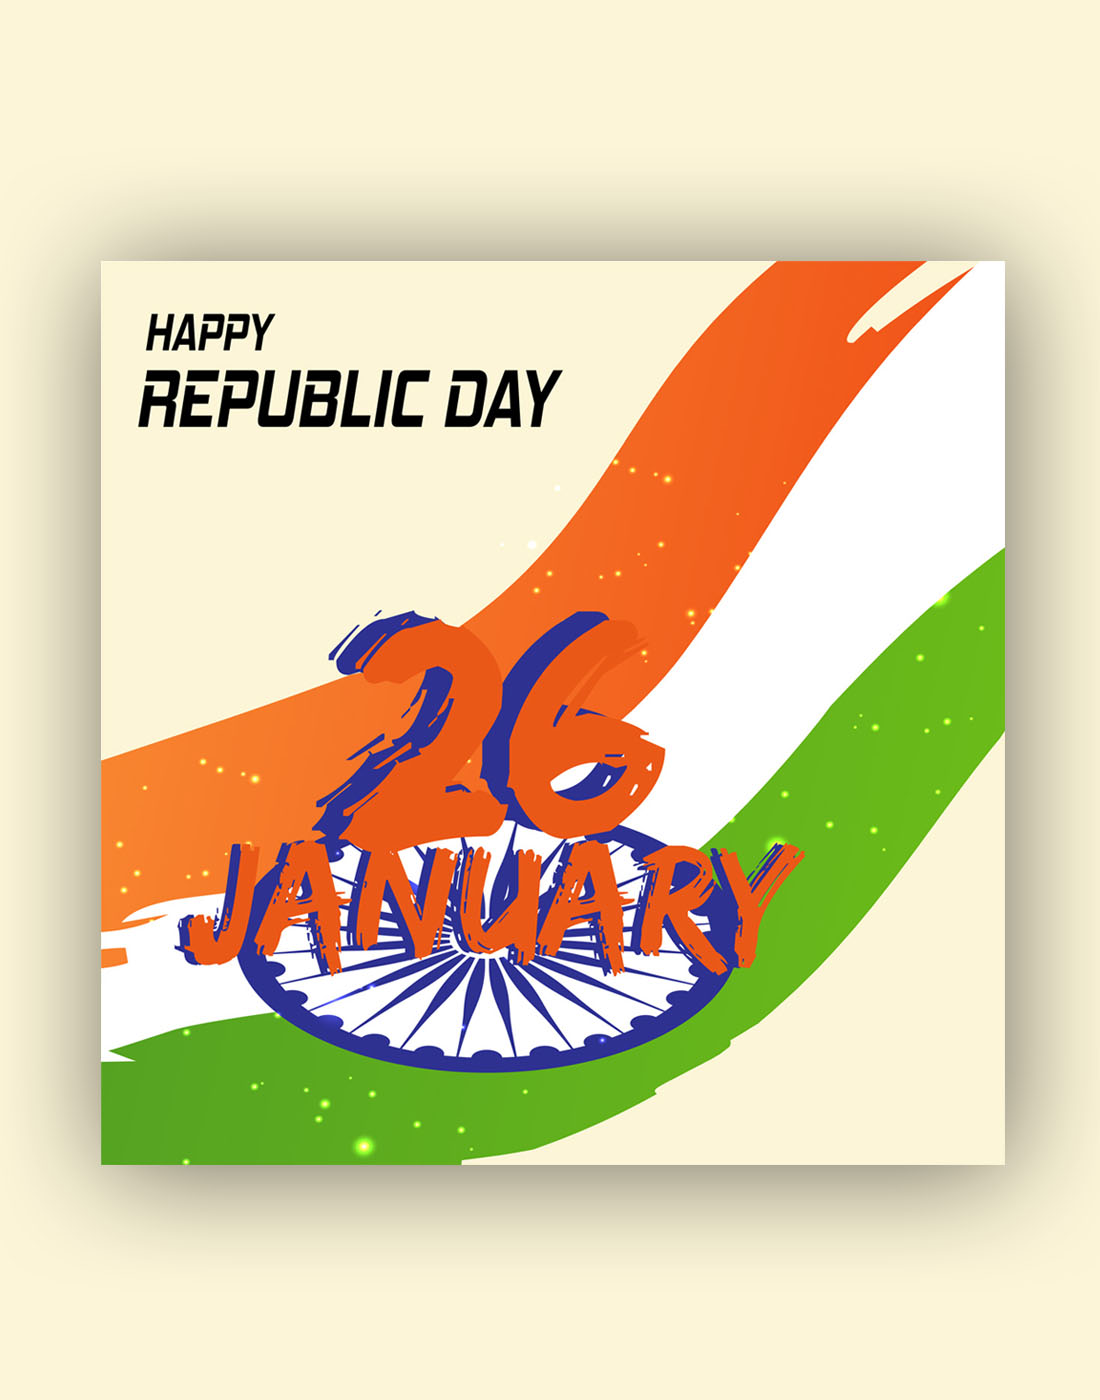 republicday vector